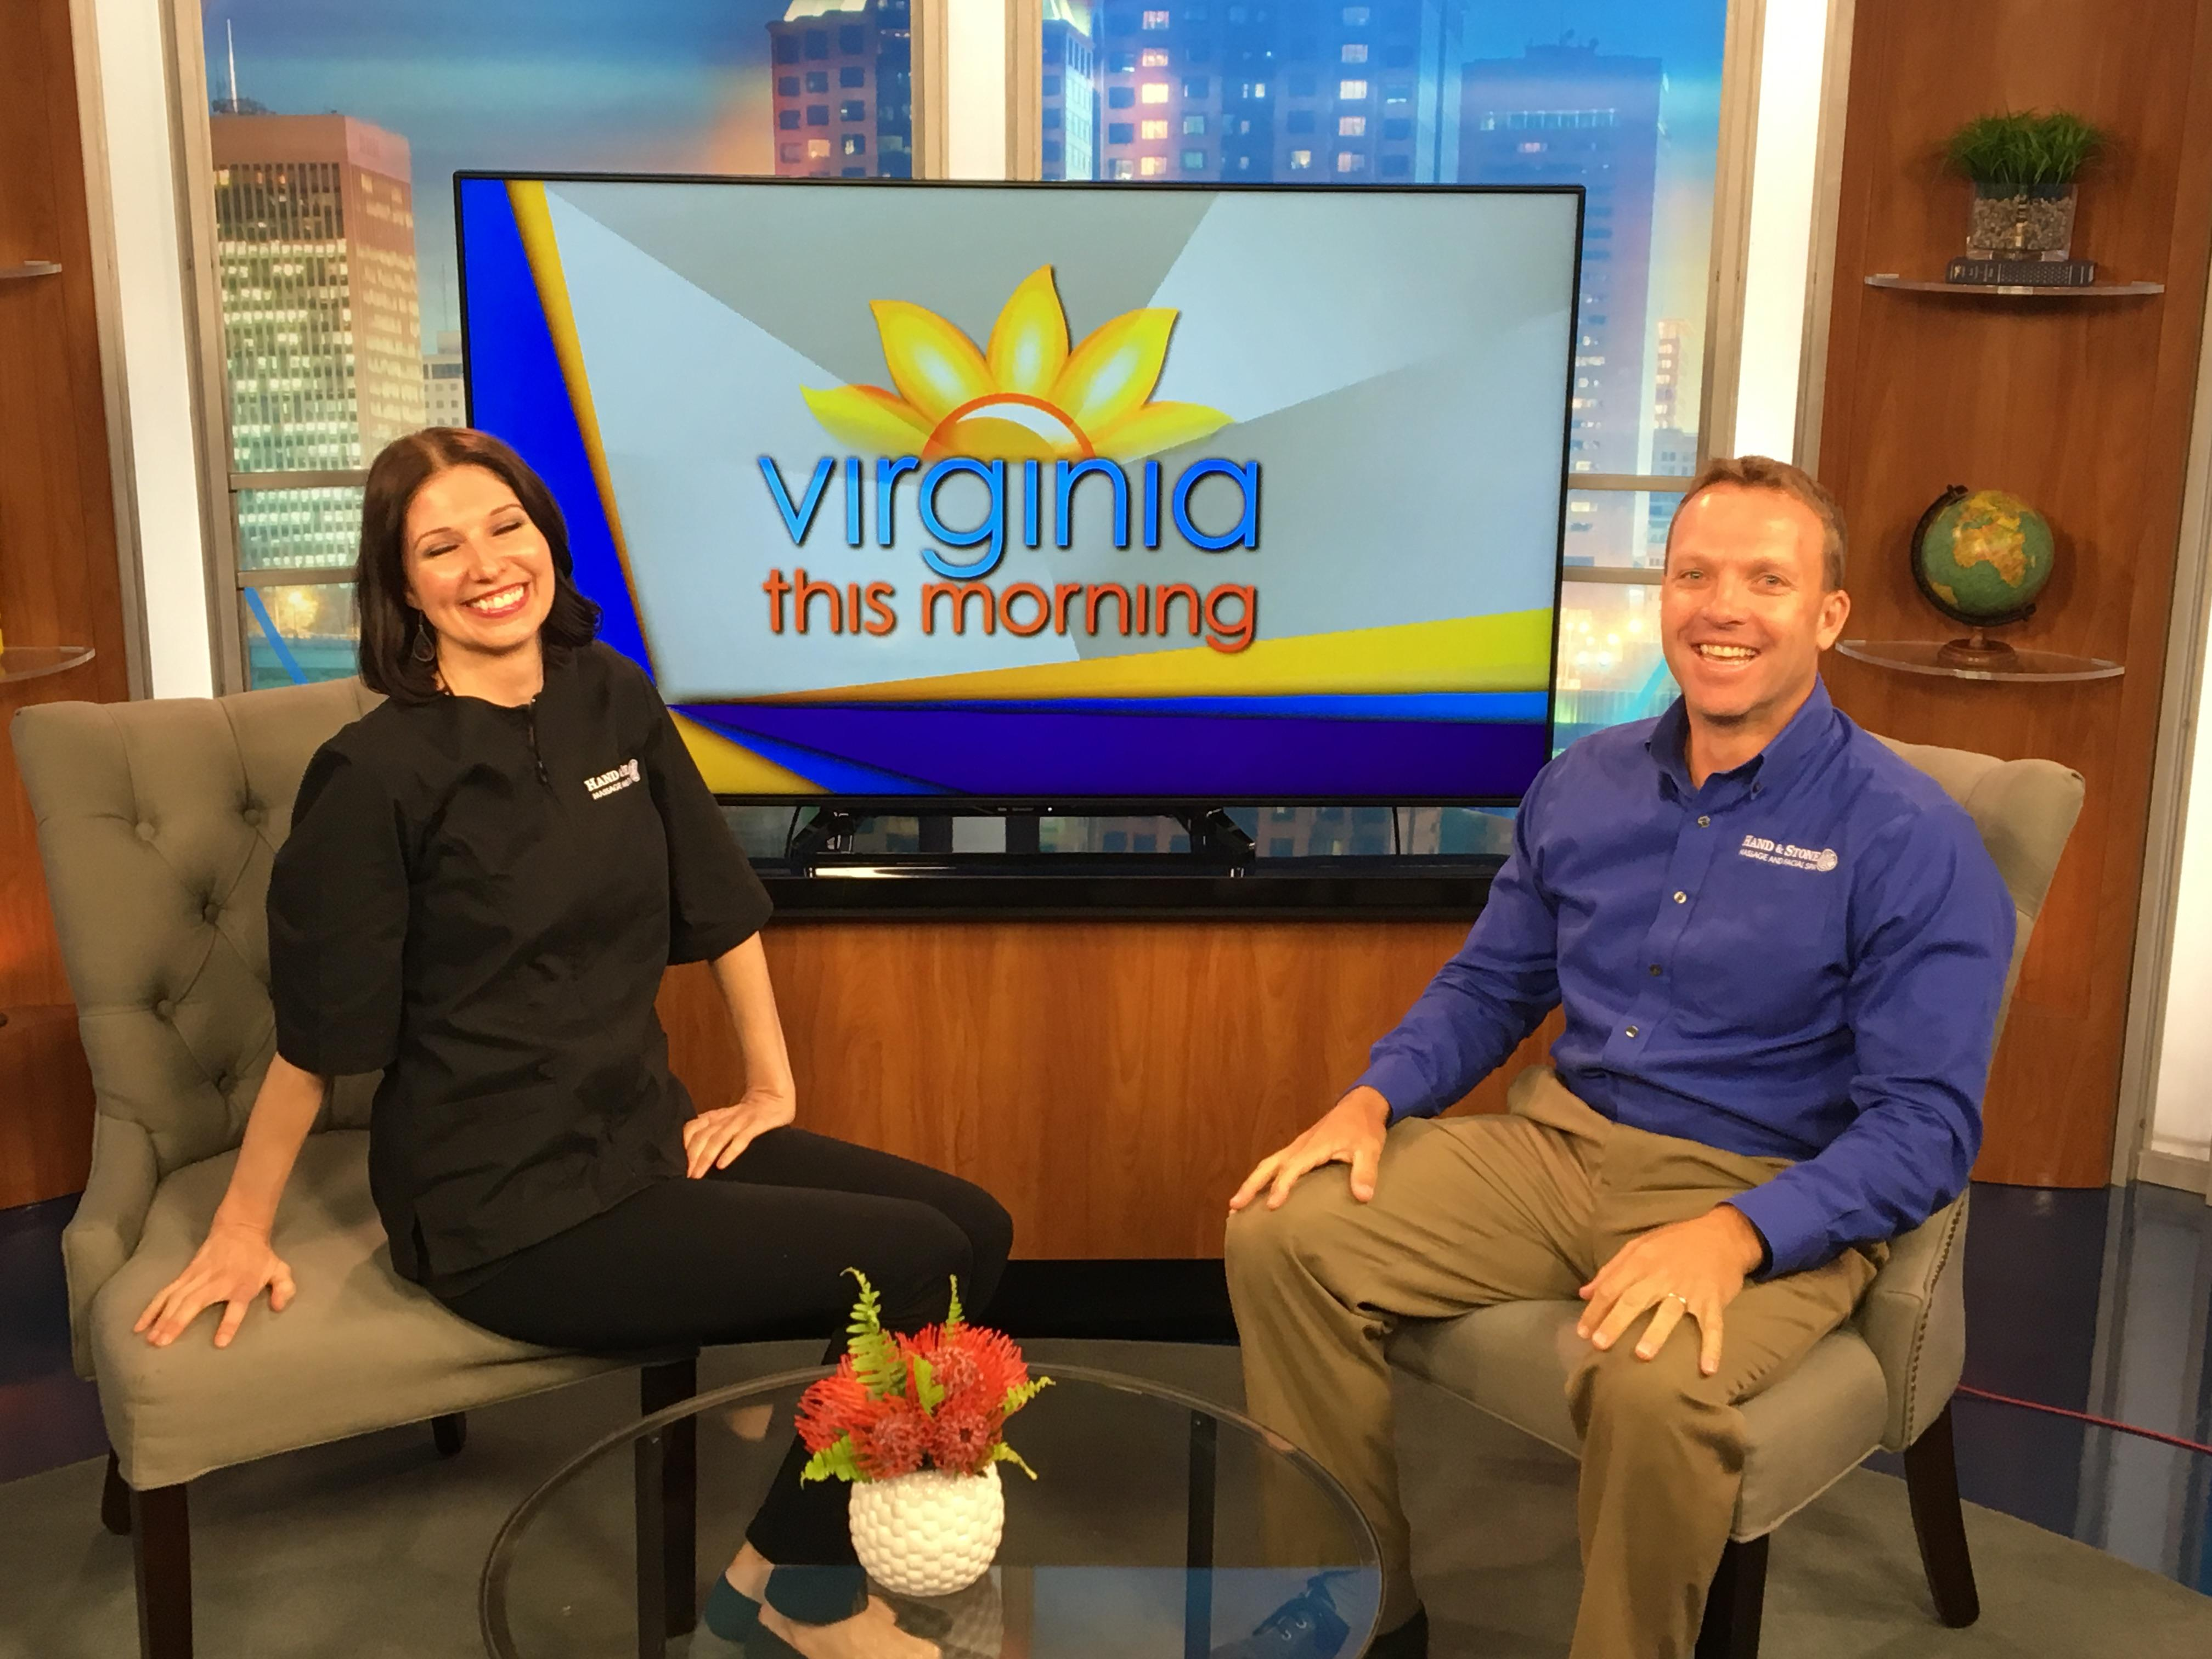 TV time on Virginia this Morning.